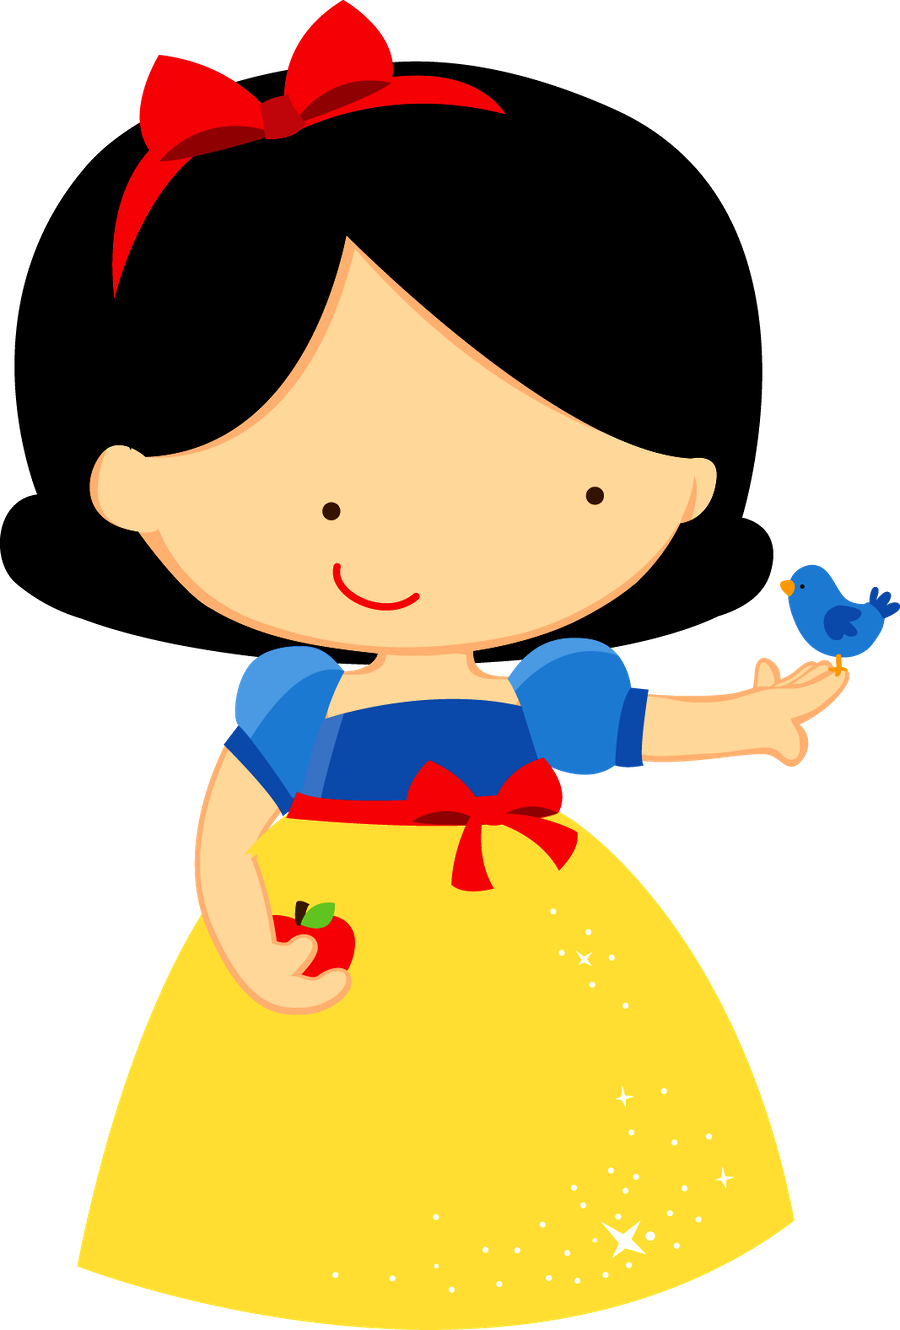 Snow white clipart apple vector freeuse stock Baby Snow White Clipart at GetDrawings.com | Free for personal use ... vector freeuse stock